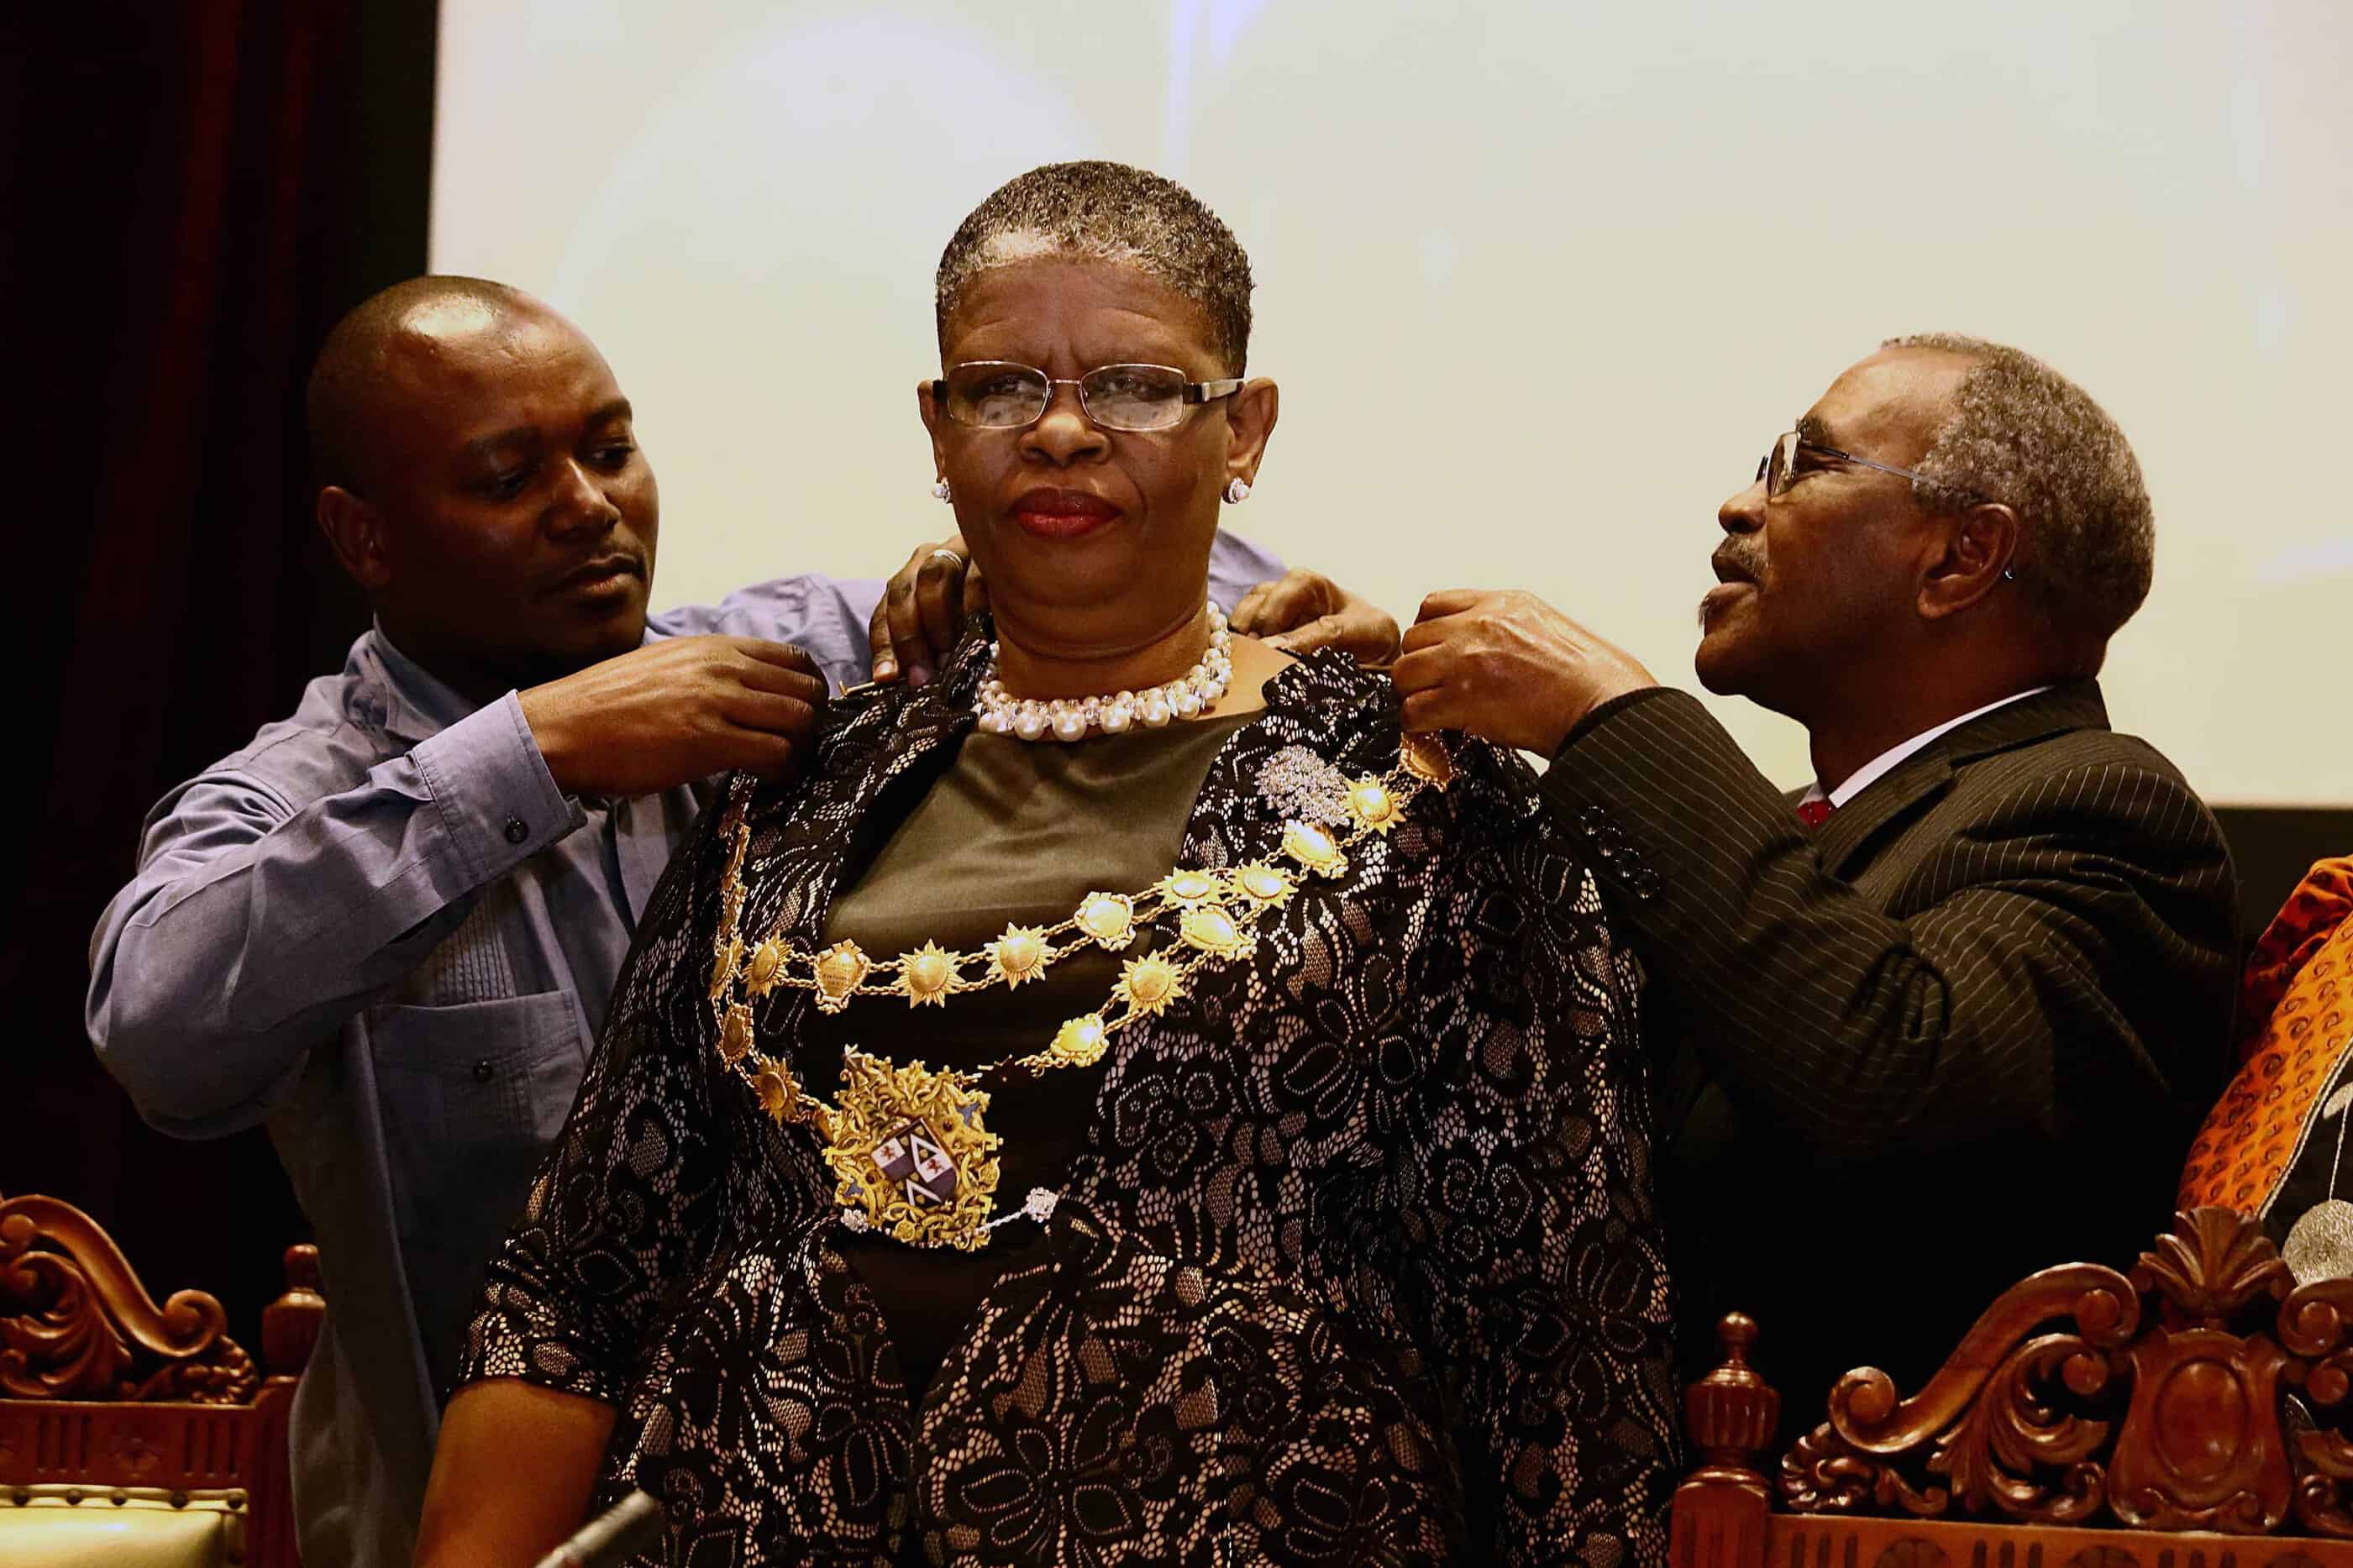 23 August 2016: eThekwini mayor Zandile Gumede during her inauguration at Durban City Hall. Gumede was the first woman to be elected mayor of the metro. (Photograph by Gallo Images/The Times/Jackie Clausen)